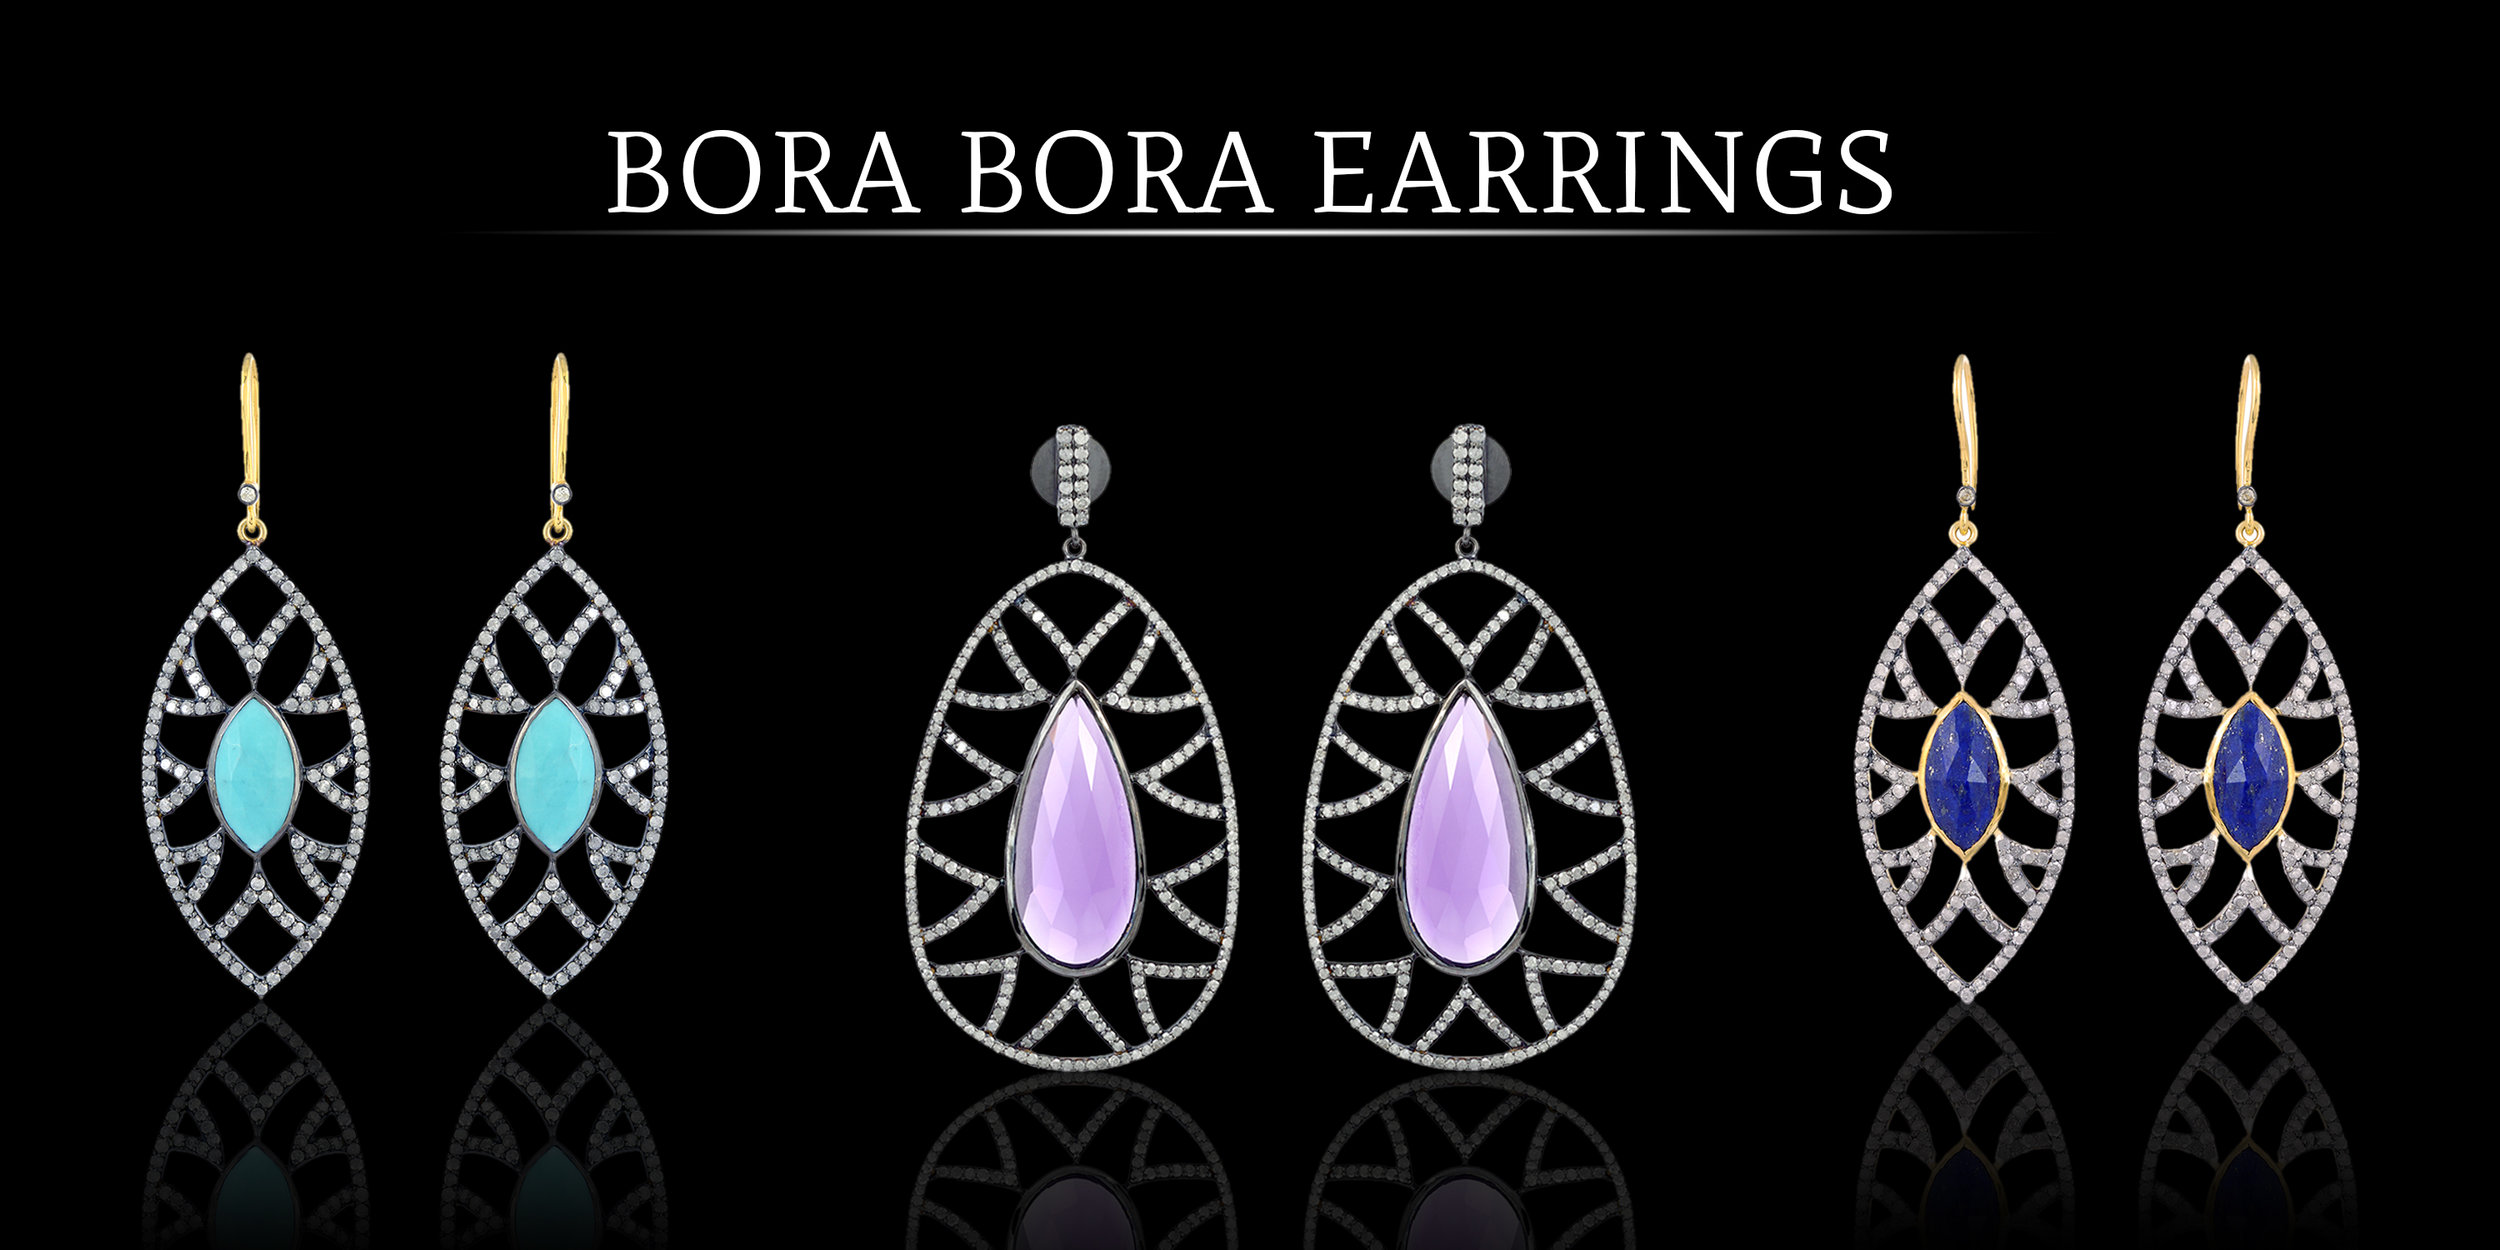 Bora Bora Earrings-1.jpg